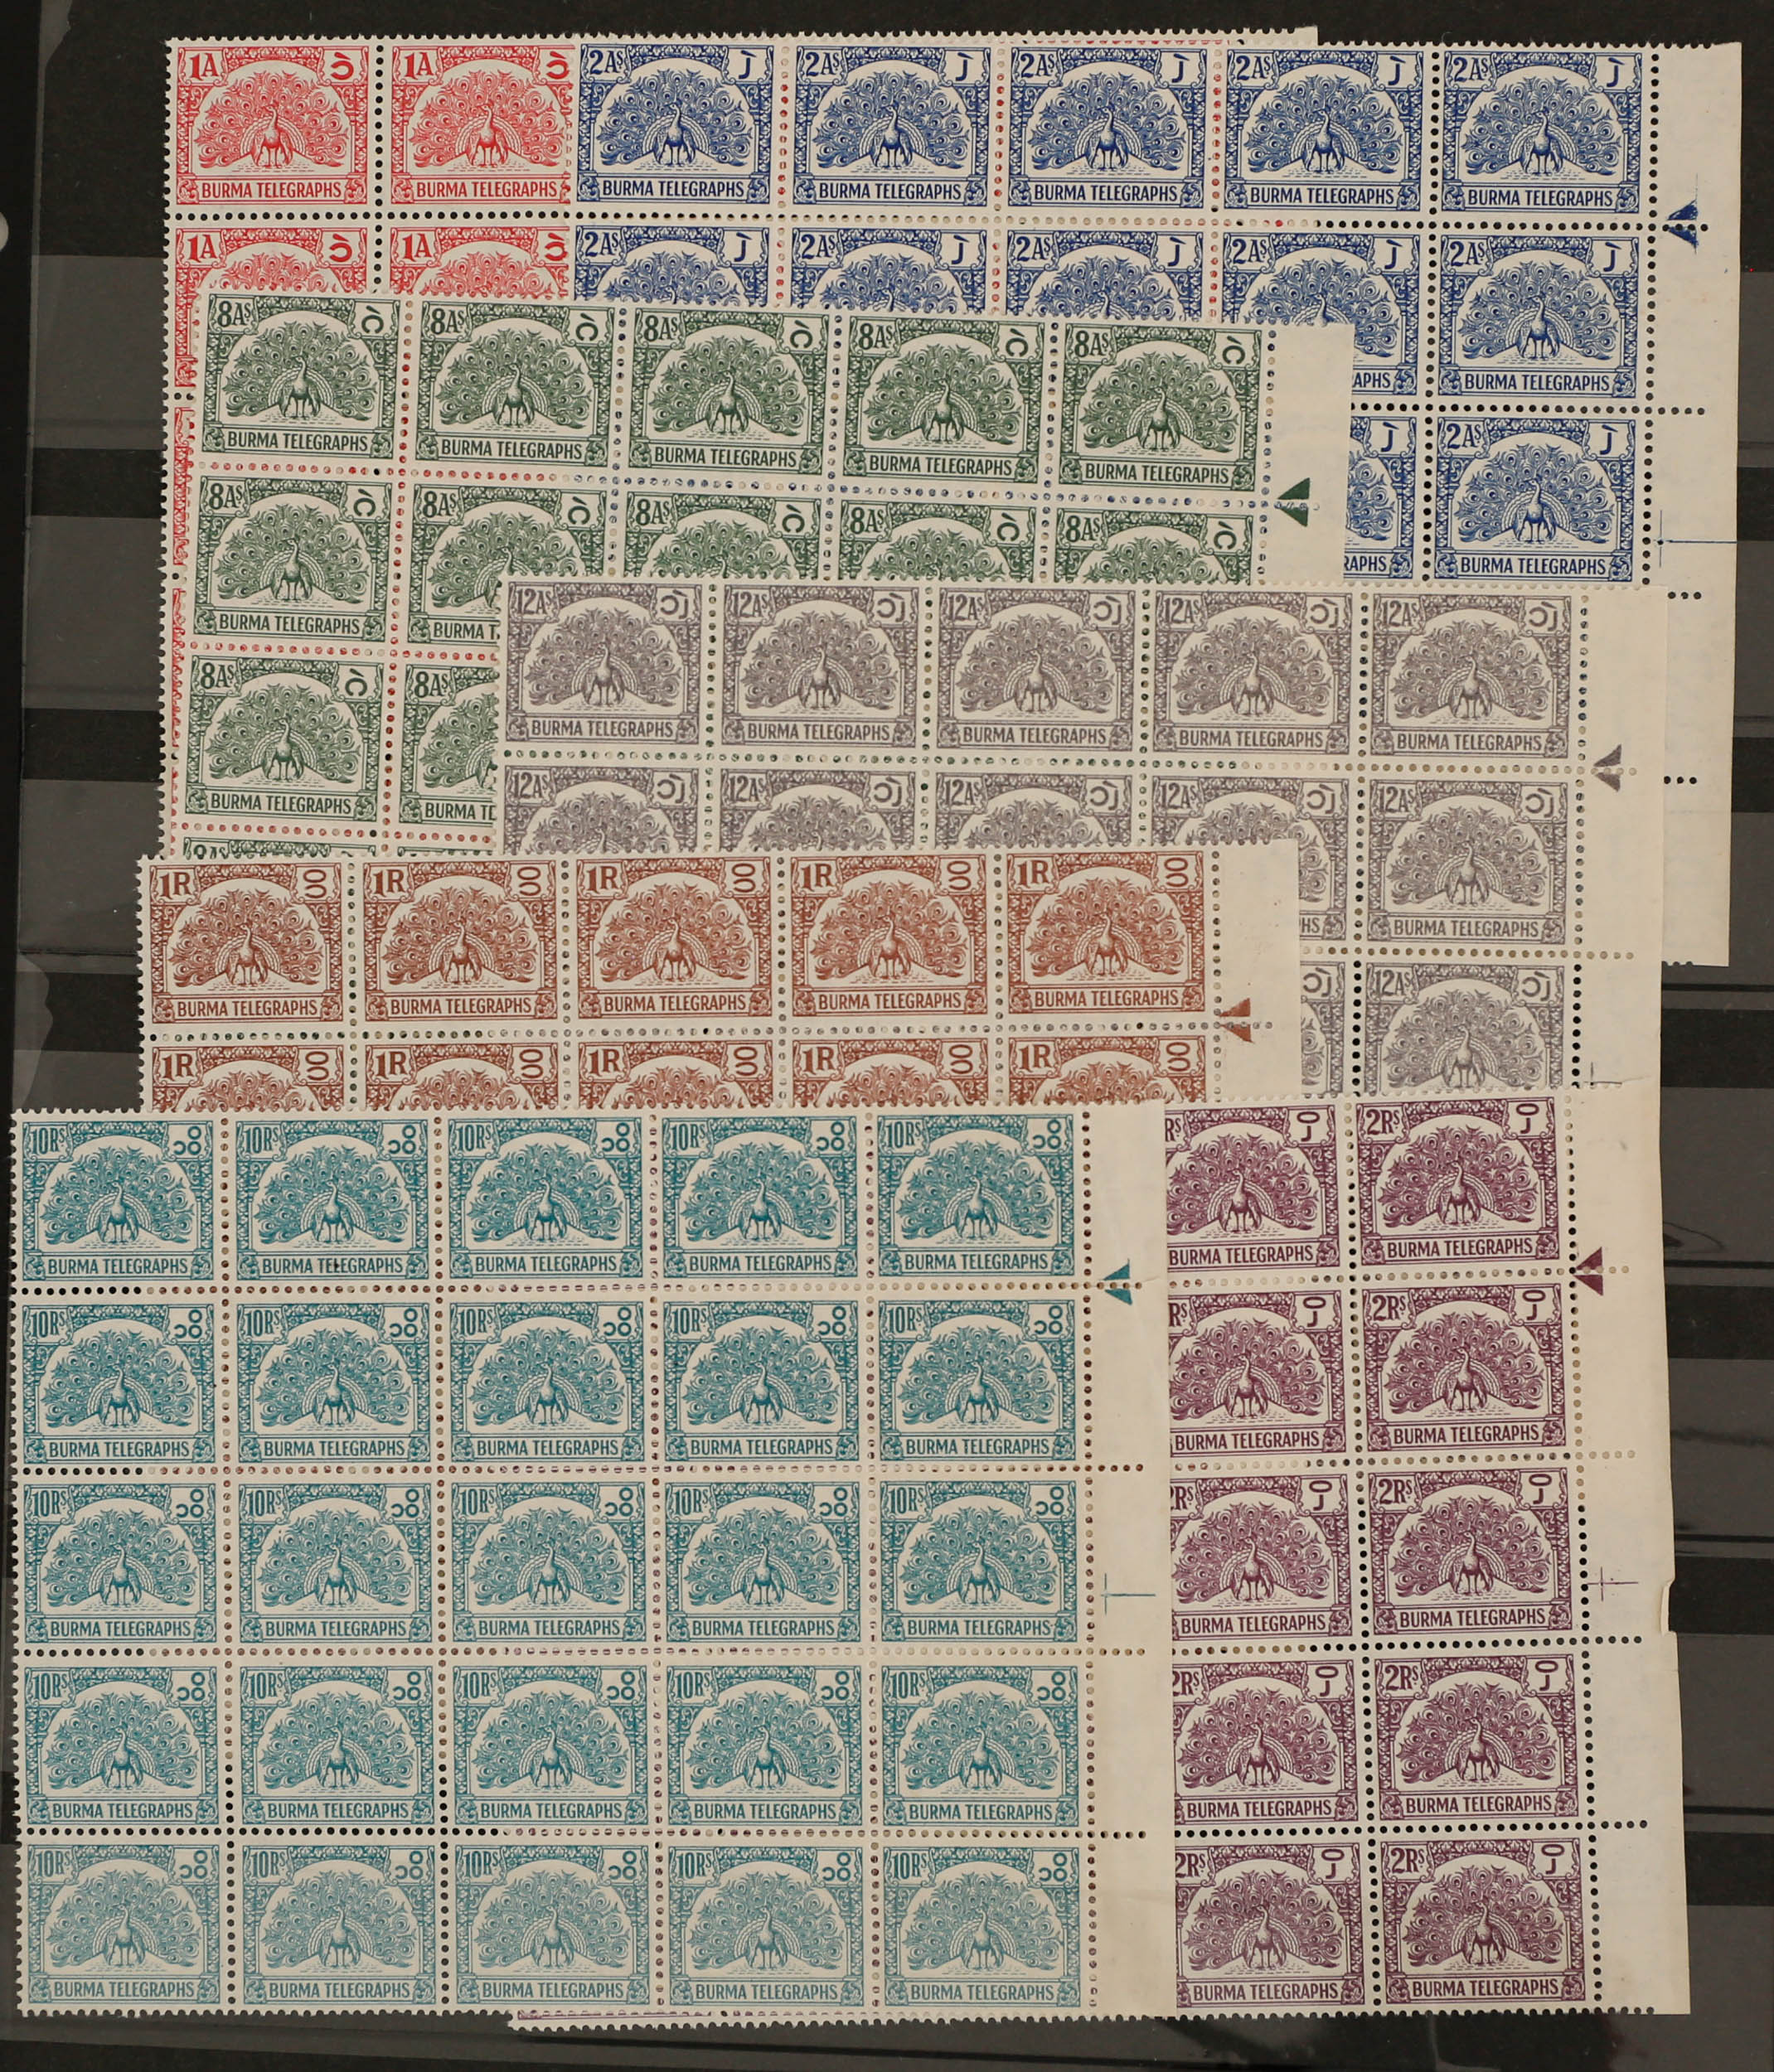 Burma 1946 Telegraph stamps set of 7 all in blocks of 25 UM SGT1/T7